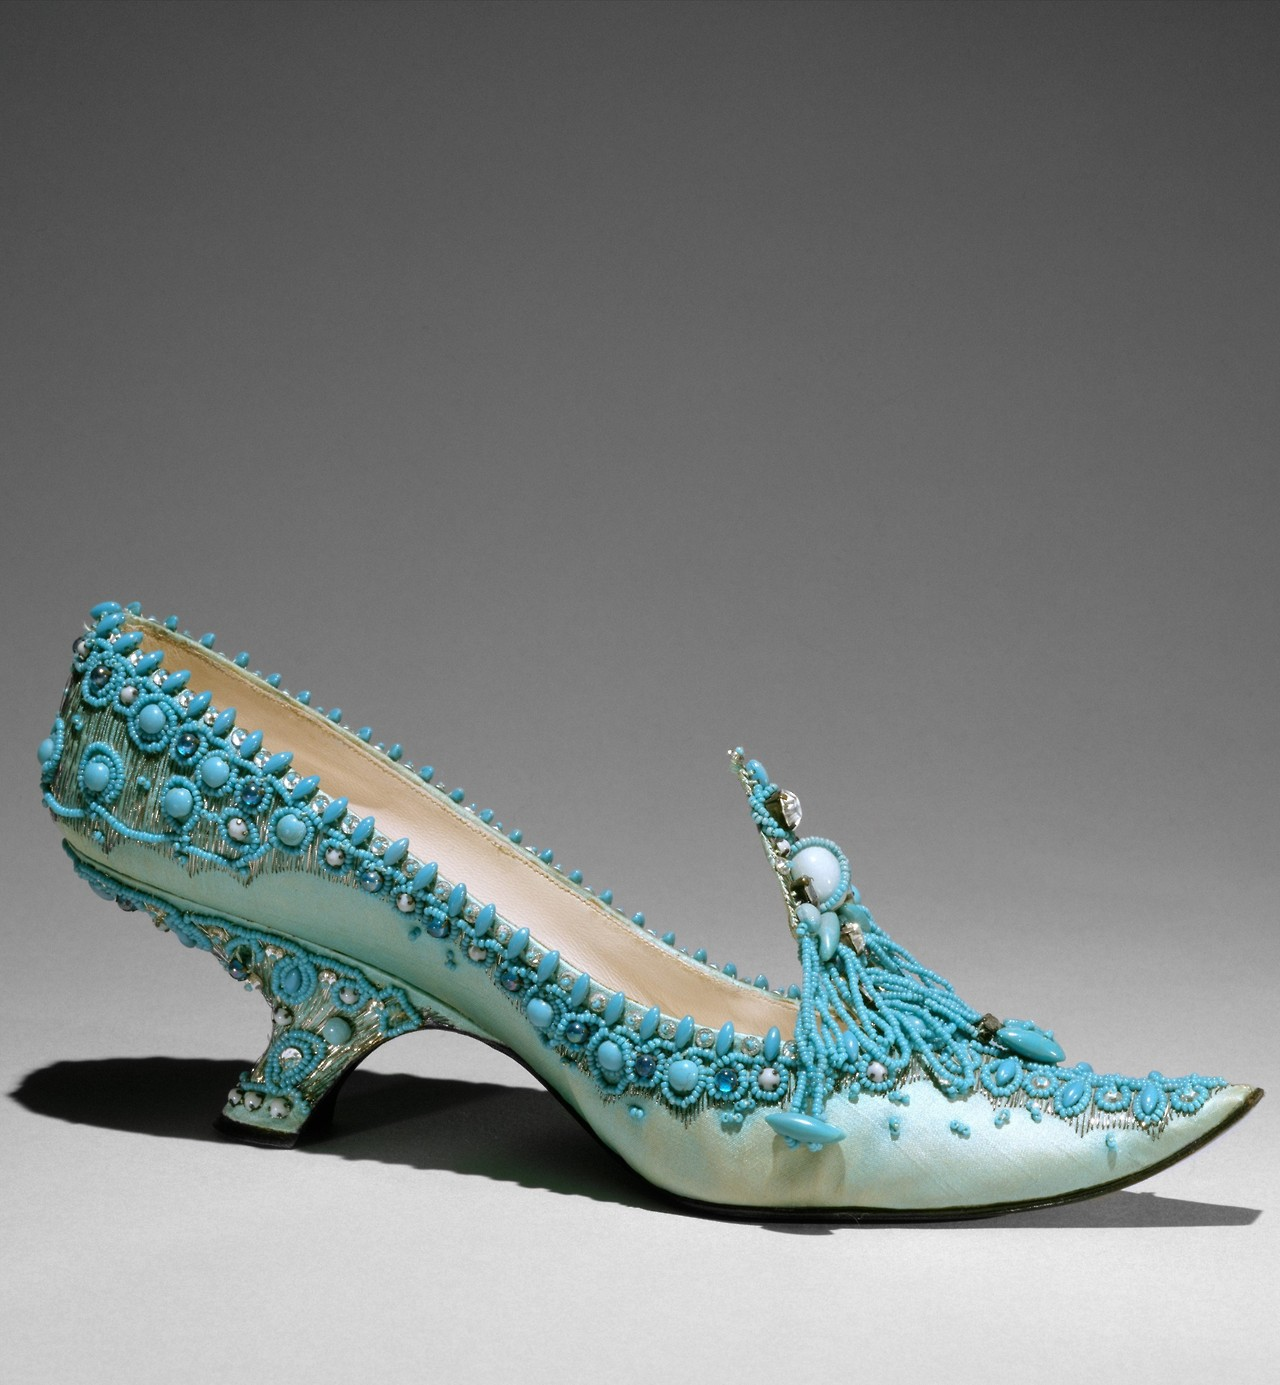 fashioninhistory :       Evening Pump       Roger Vivier for Christian Dior       1961      Roger Vivier, the shoe designer for Christian Dior from the 1940s to the '60s, was known for his exquisite forms and extravagant materials. In this evening pump, he took the upturned toe and turquoise blue associated with the glazes and semiprecious stones of the Middle East to create his version of the Orientalist slipper. While the sleek contours of Vivier's shoes invariably narrowed the natural shape of the foot, his innovative heel treatments add tension and even a feeling of incredulity to his designs.